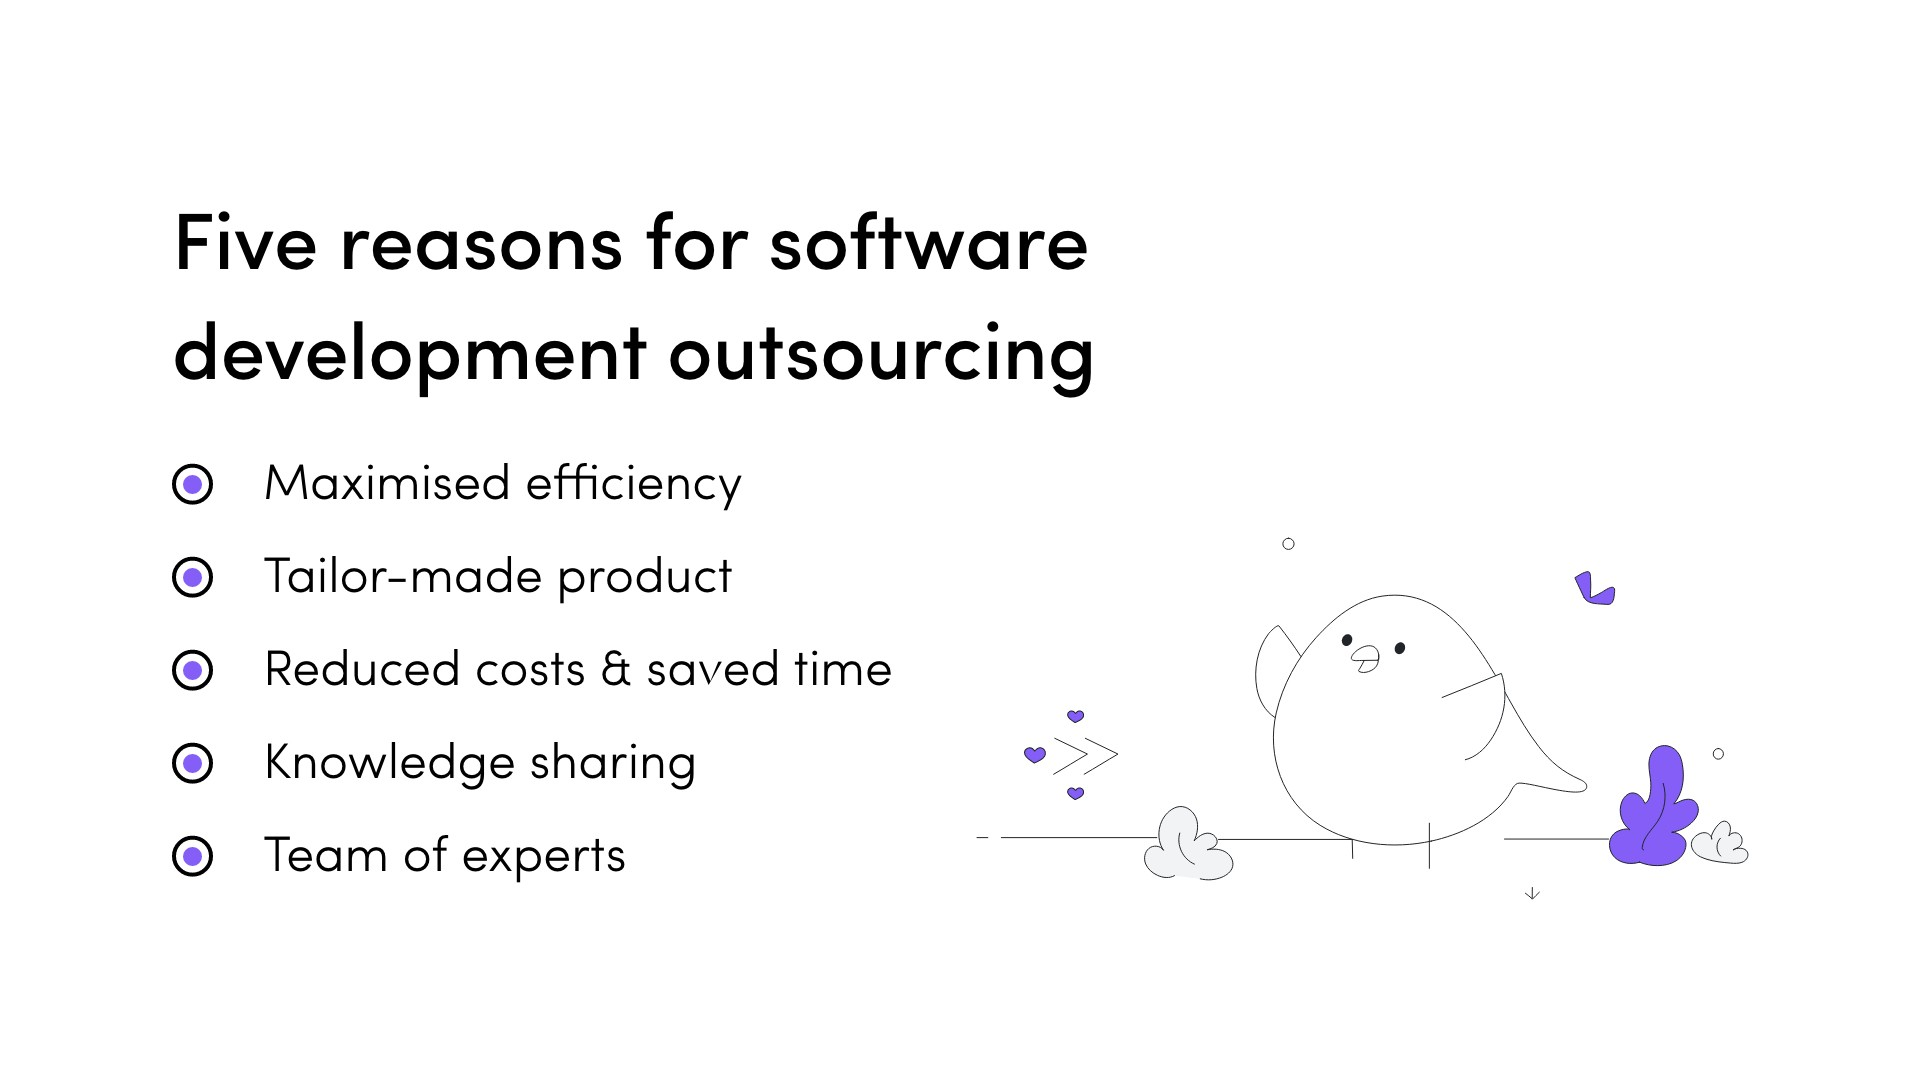 5 reasons for software development outsourcing: maximized efficiency, tailor-made product, reduced costs, saved time, knowledge sharing, team od experts